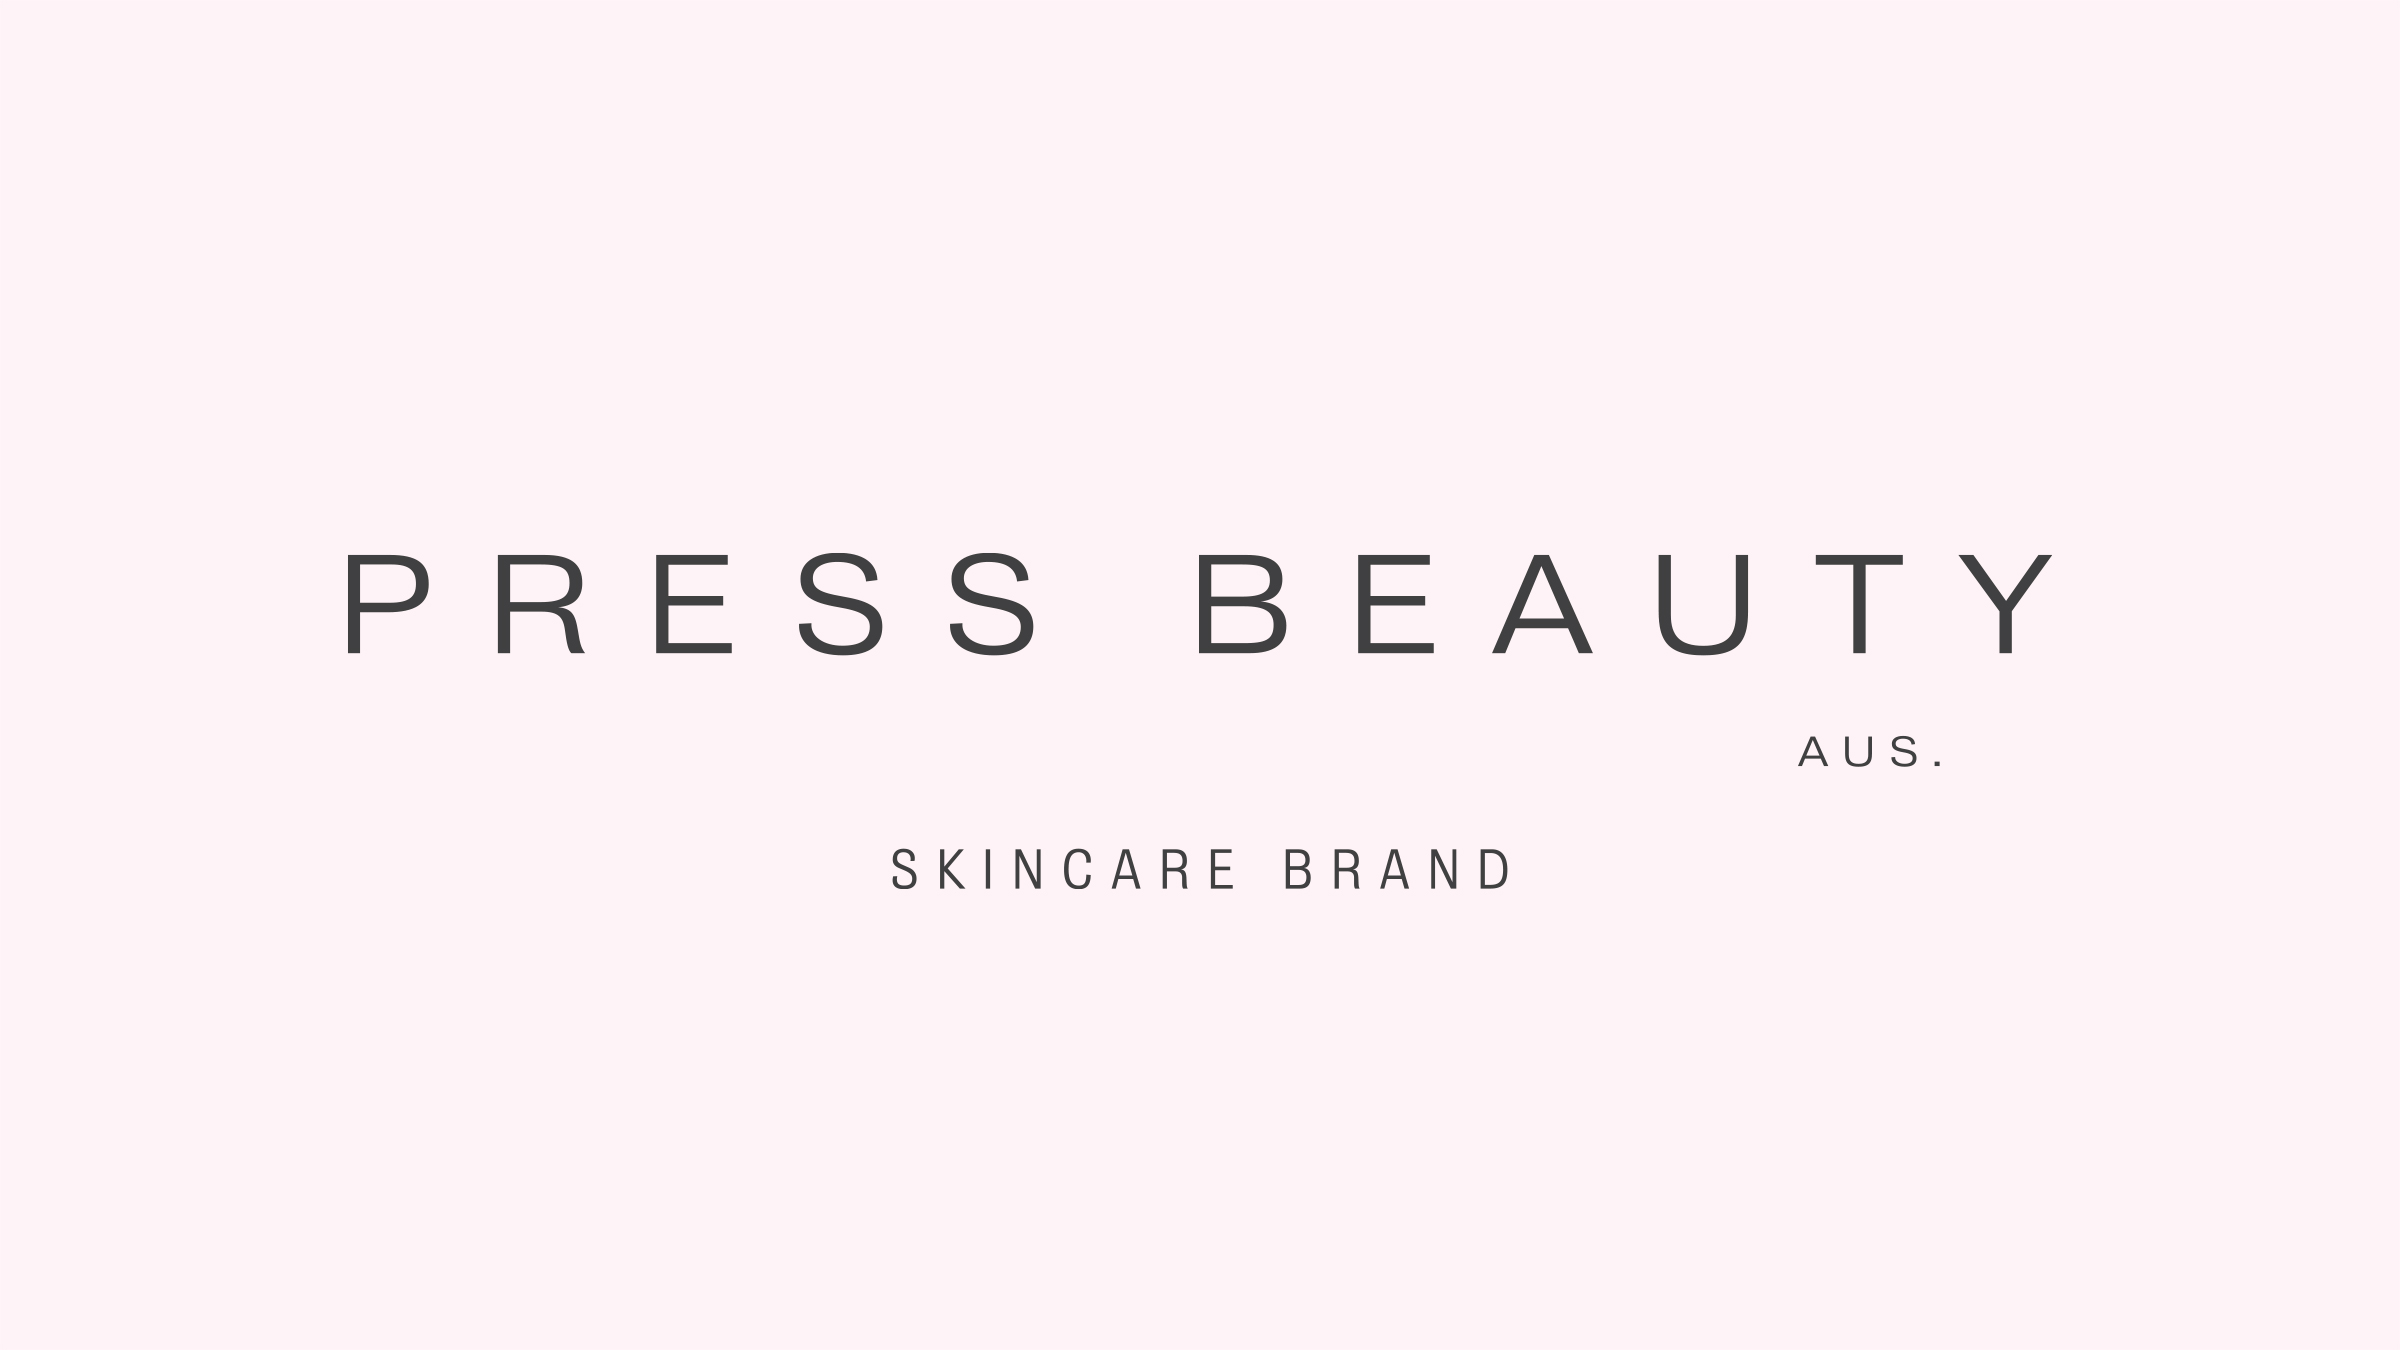 Press Beauty Skin Care brand logo black on pink